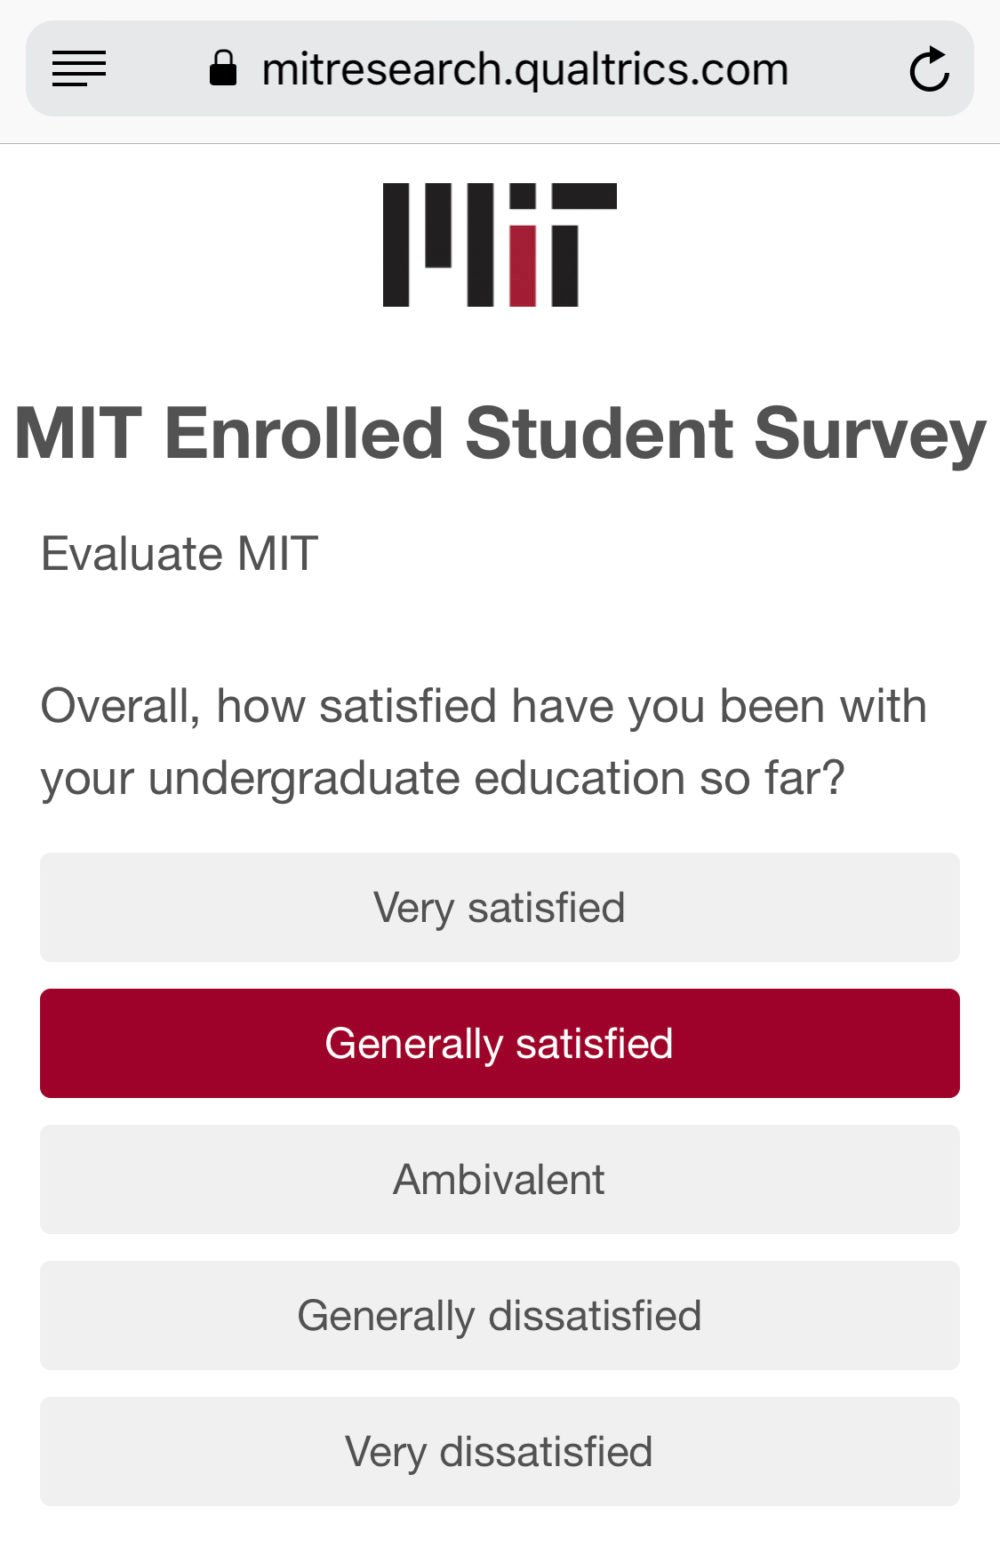 Overall, how satisfied have you been with your undergraduate education so far?